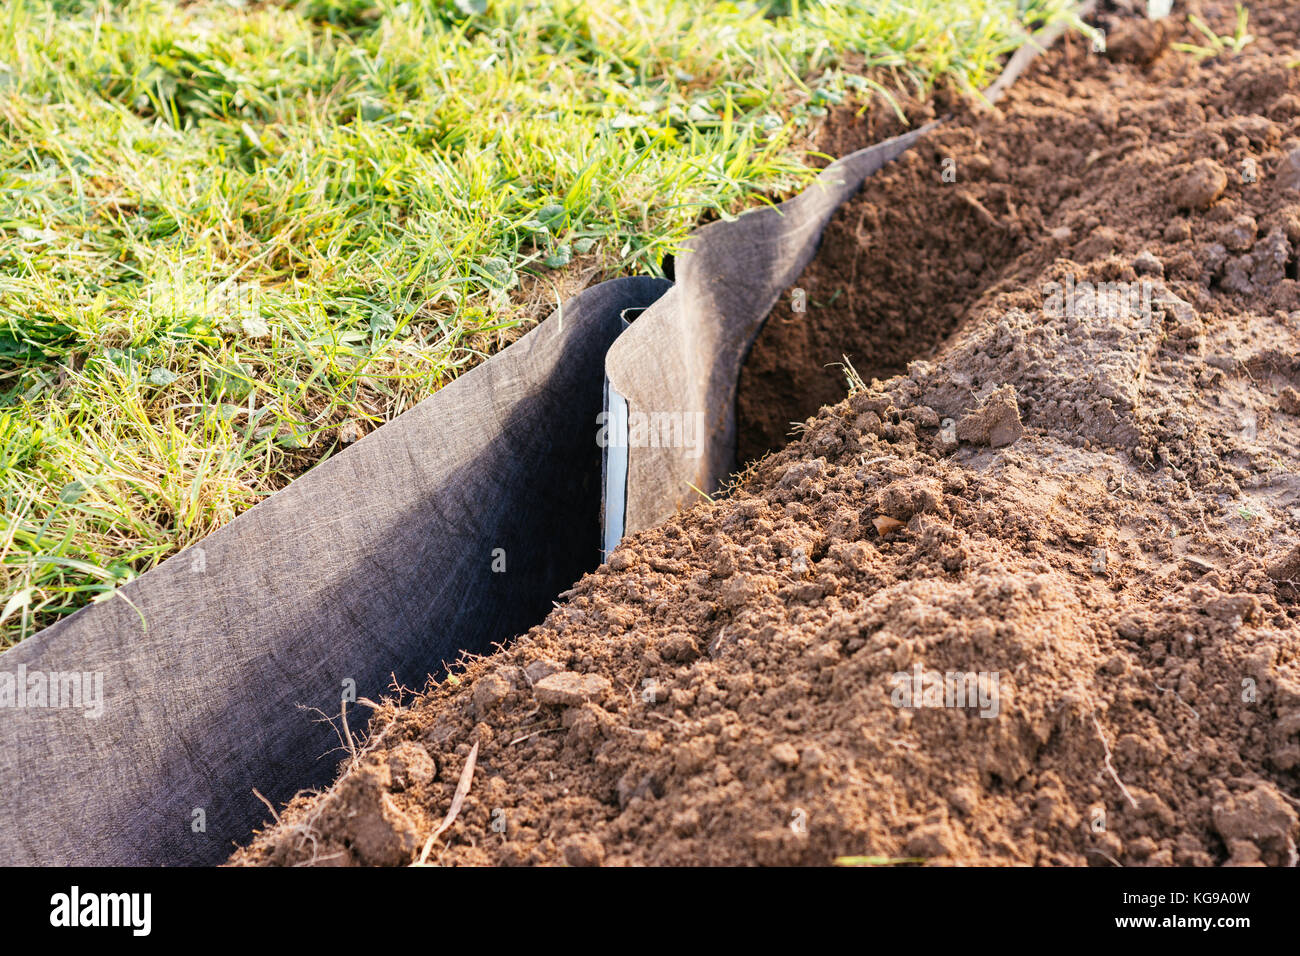 Root barrier being installed in a garden plot for raspberries. - Stock Image